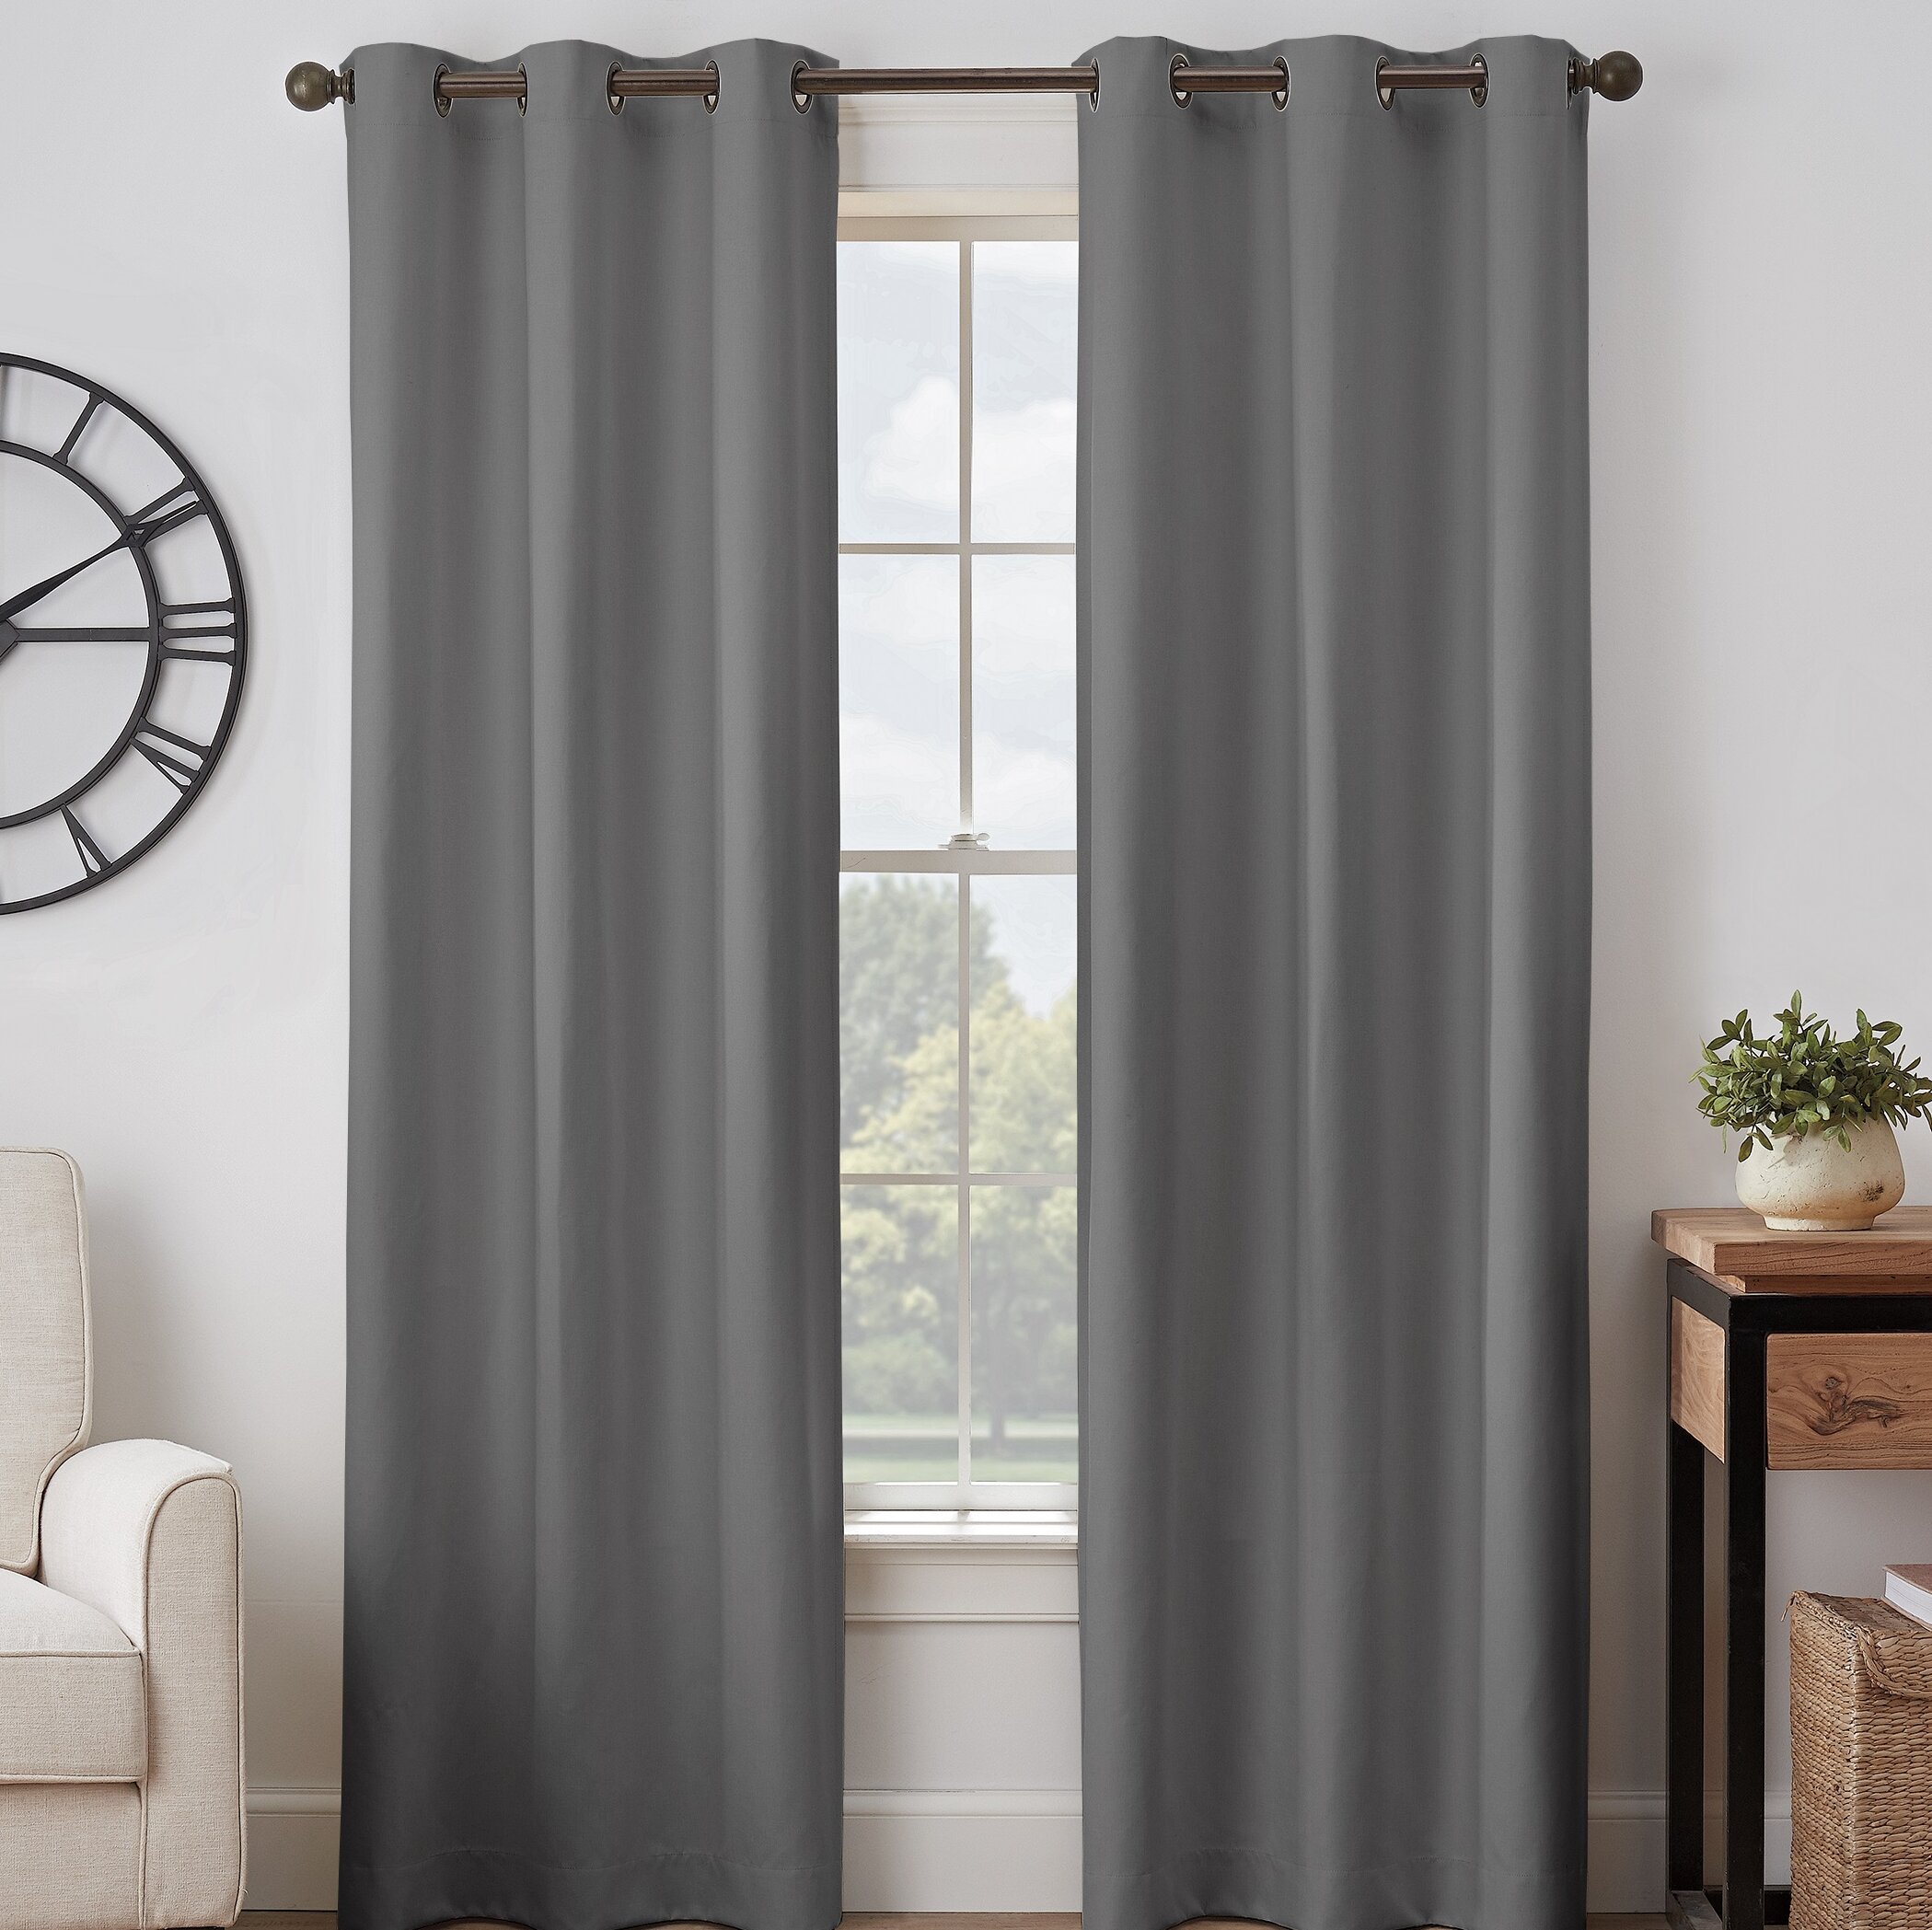 Black Blackout Curtains You Ll Love In 2021 Wayfair